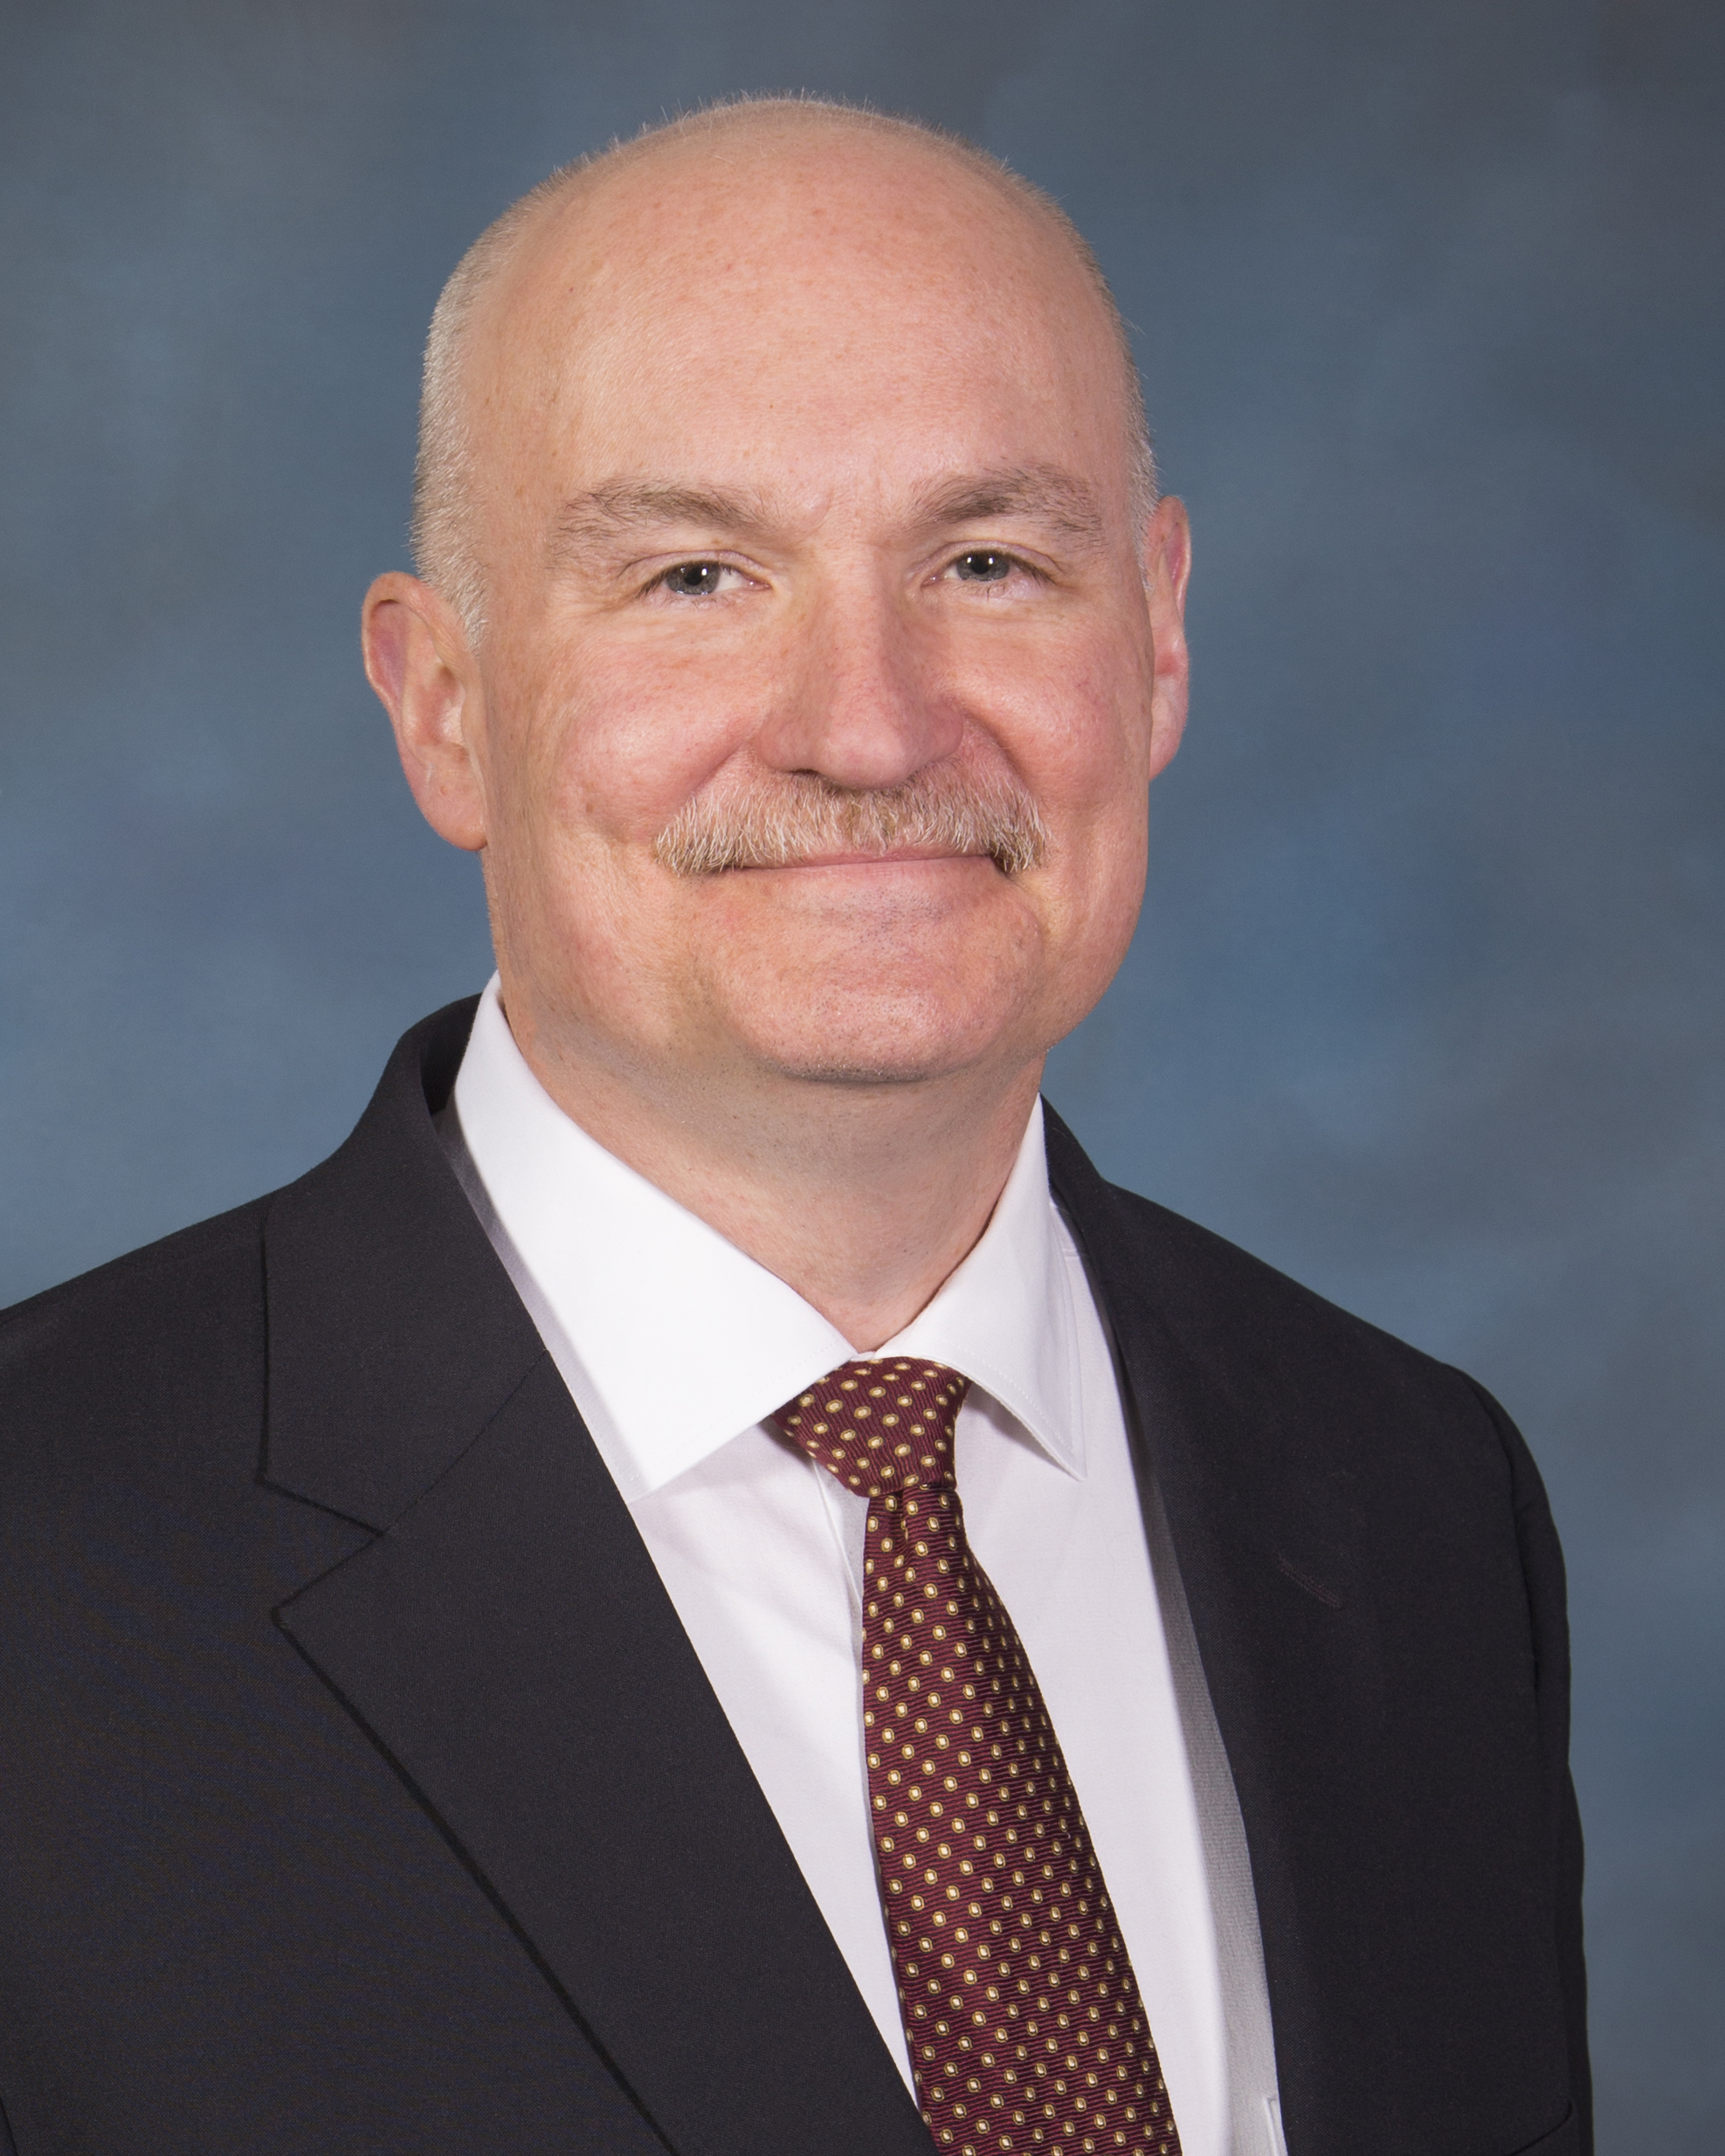 Photo of Scott A. Poyer, Clerk of the Circuit Court for Anne Arundel County